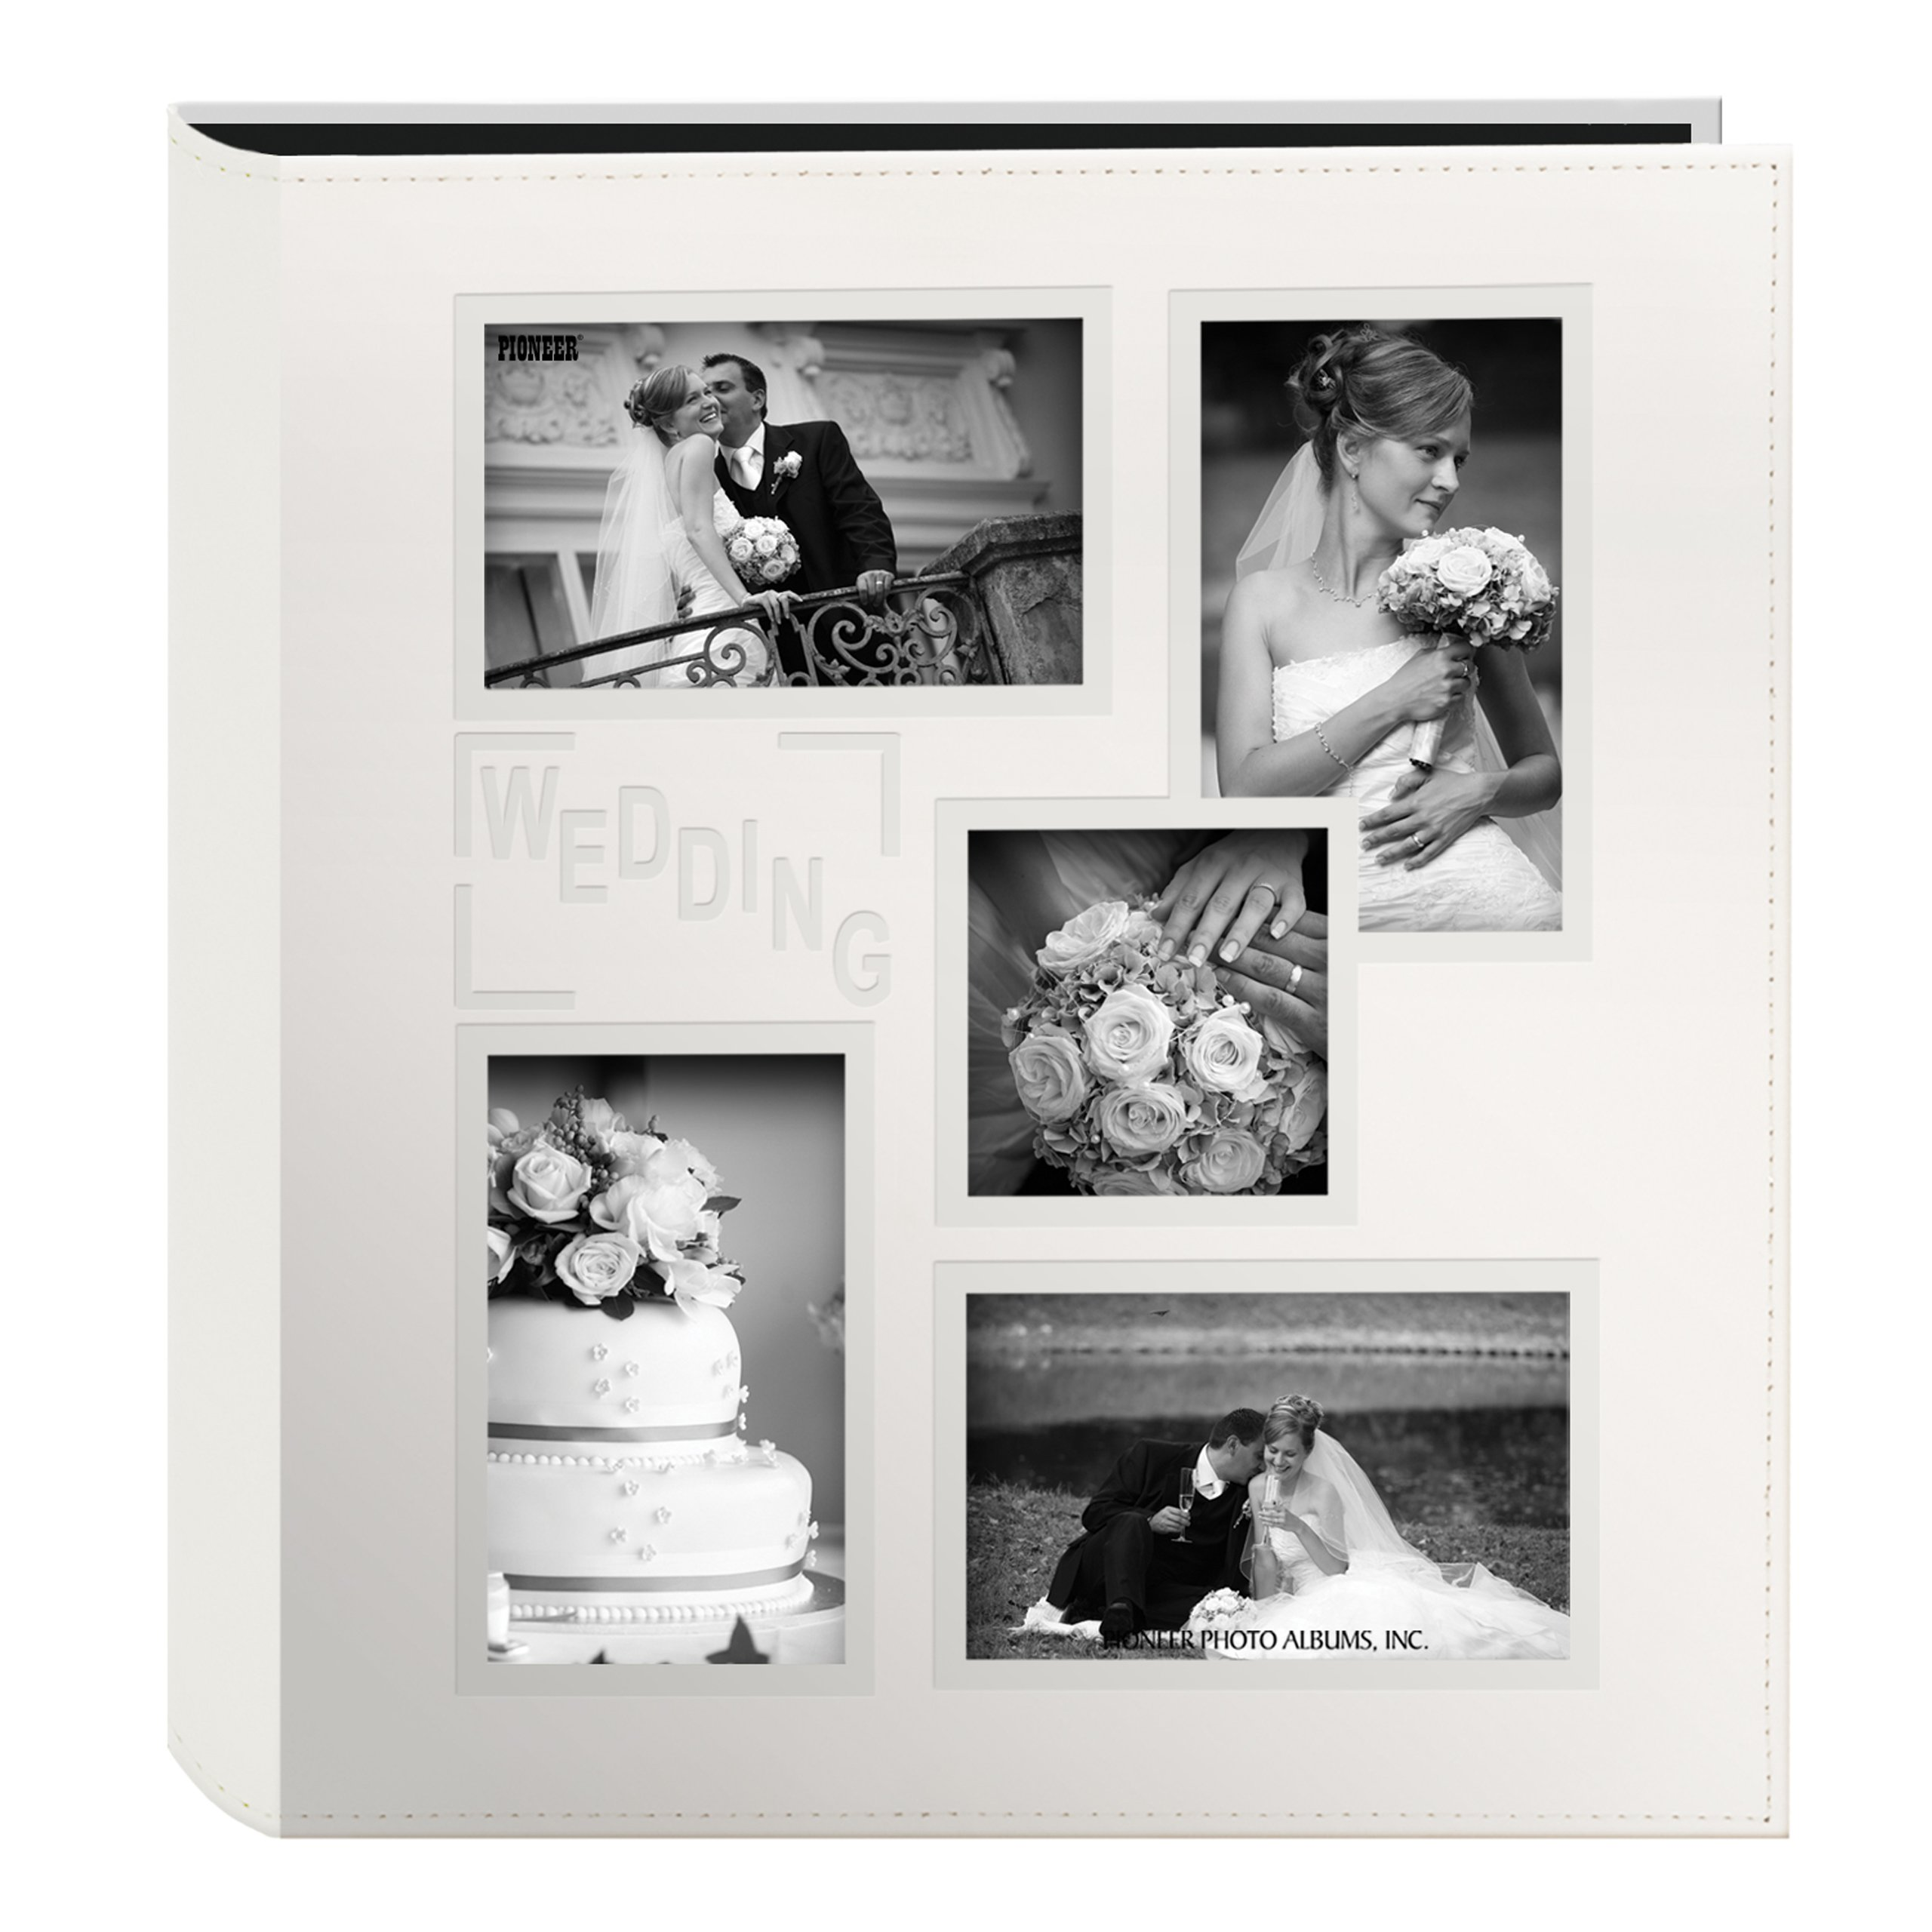 Pioneer Collage Frame Embossed Wedding Sewn Leatherette Cover Photo Album, Ivory by Pioneer Photo Albums